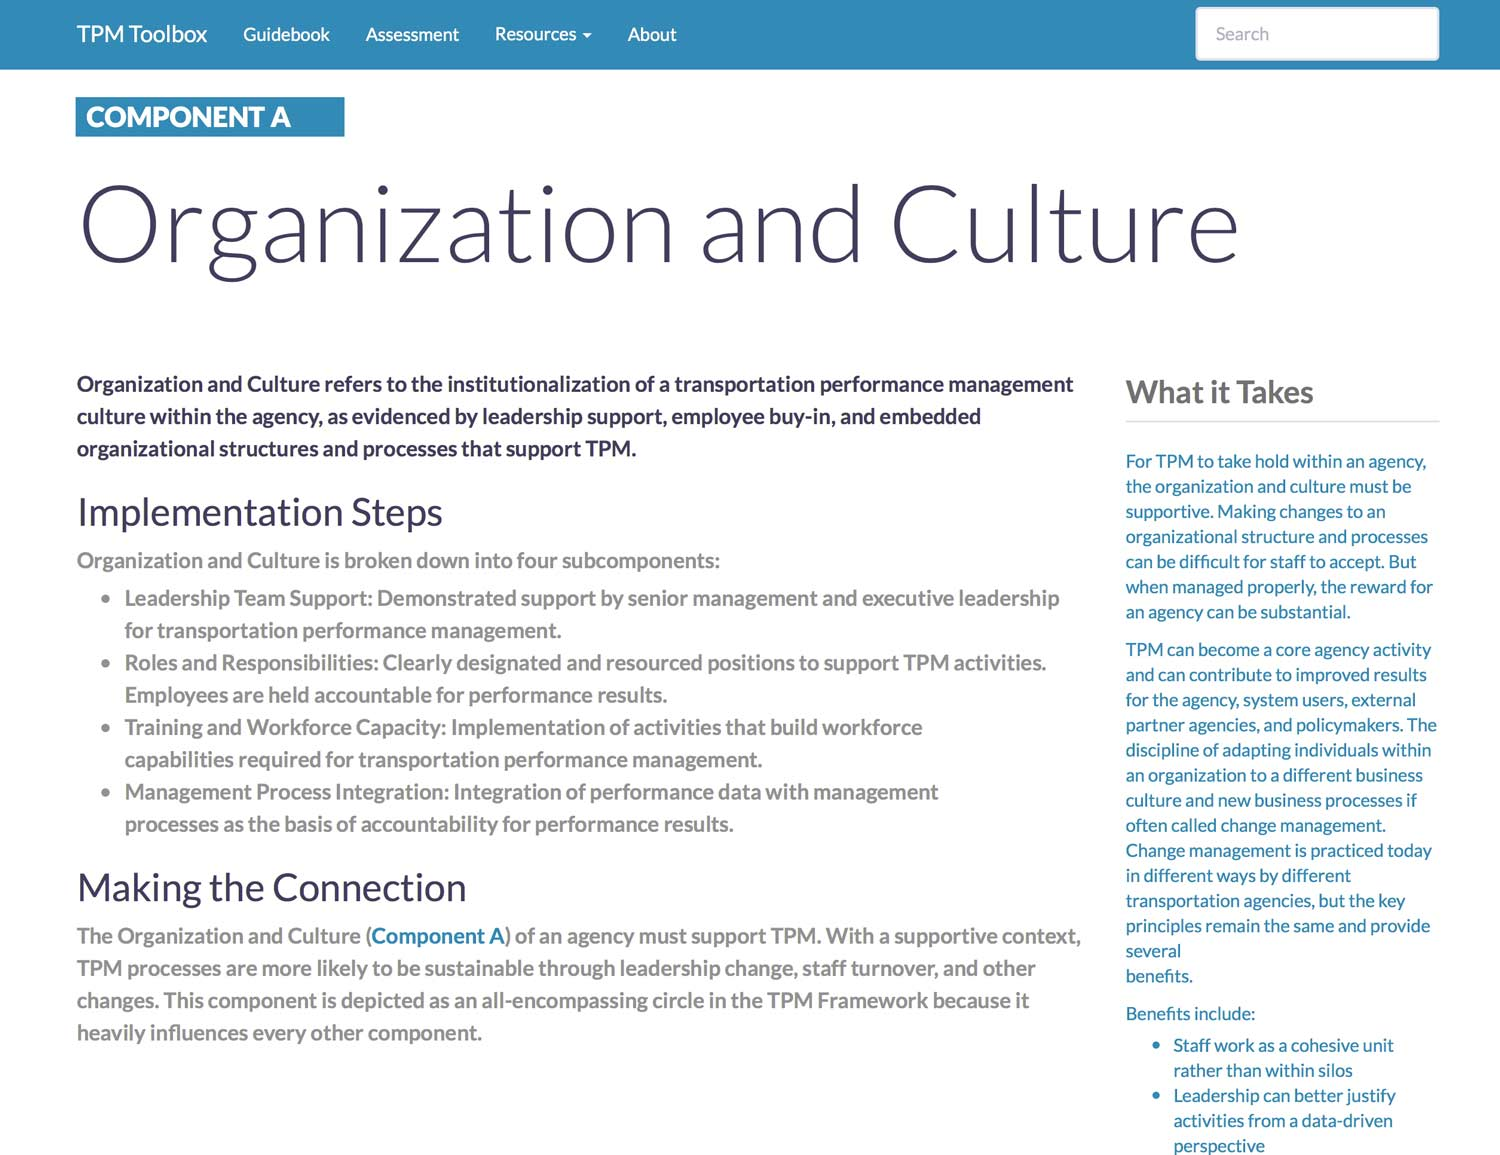 Thumbnail image of Component A Summary webpage. Organization and Culture refers to the institutionalization of a transportation performance management culture within the agency, as evidenced by leadership support, employee buy-in, and embedded organizational structures and processes that support TPM.